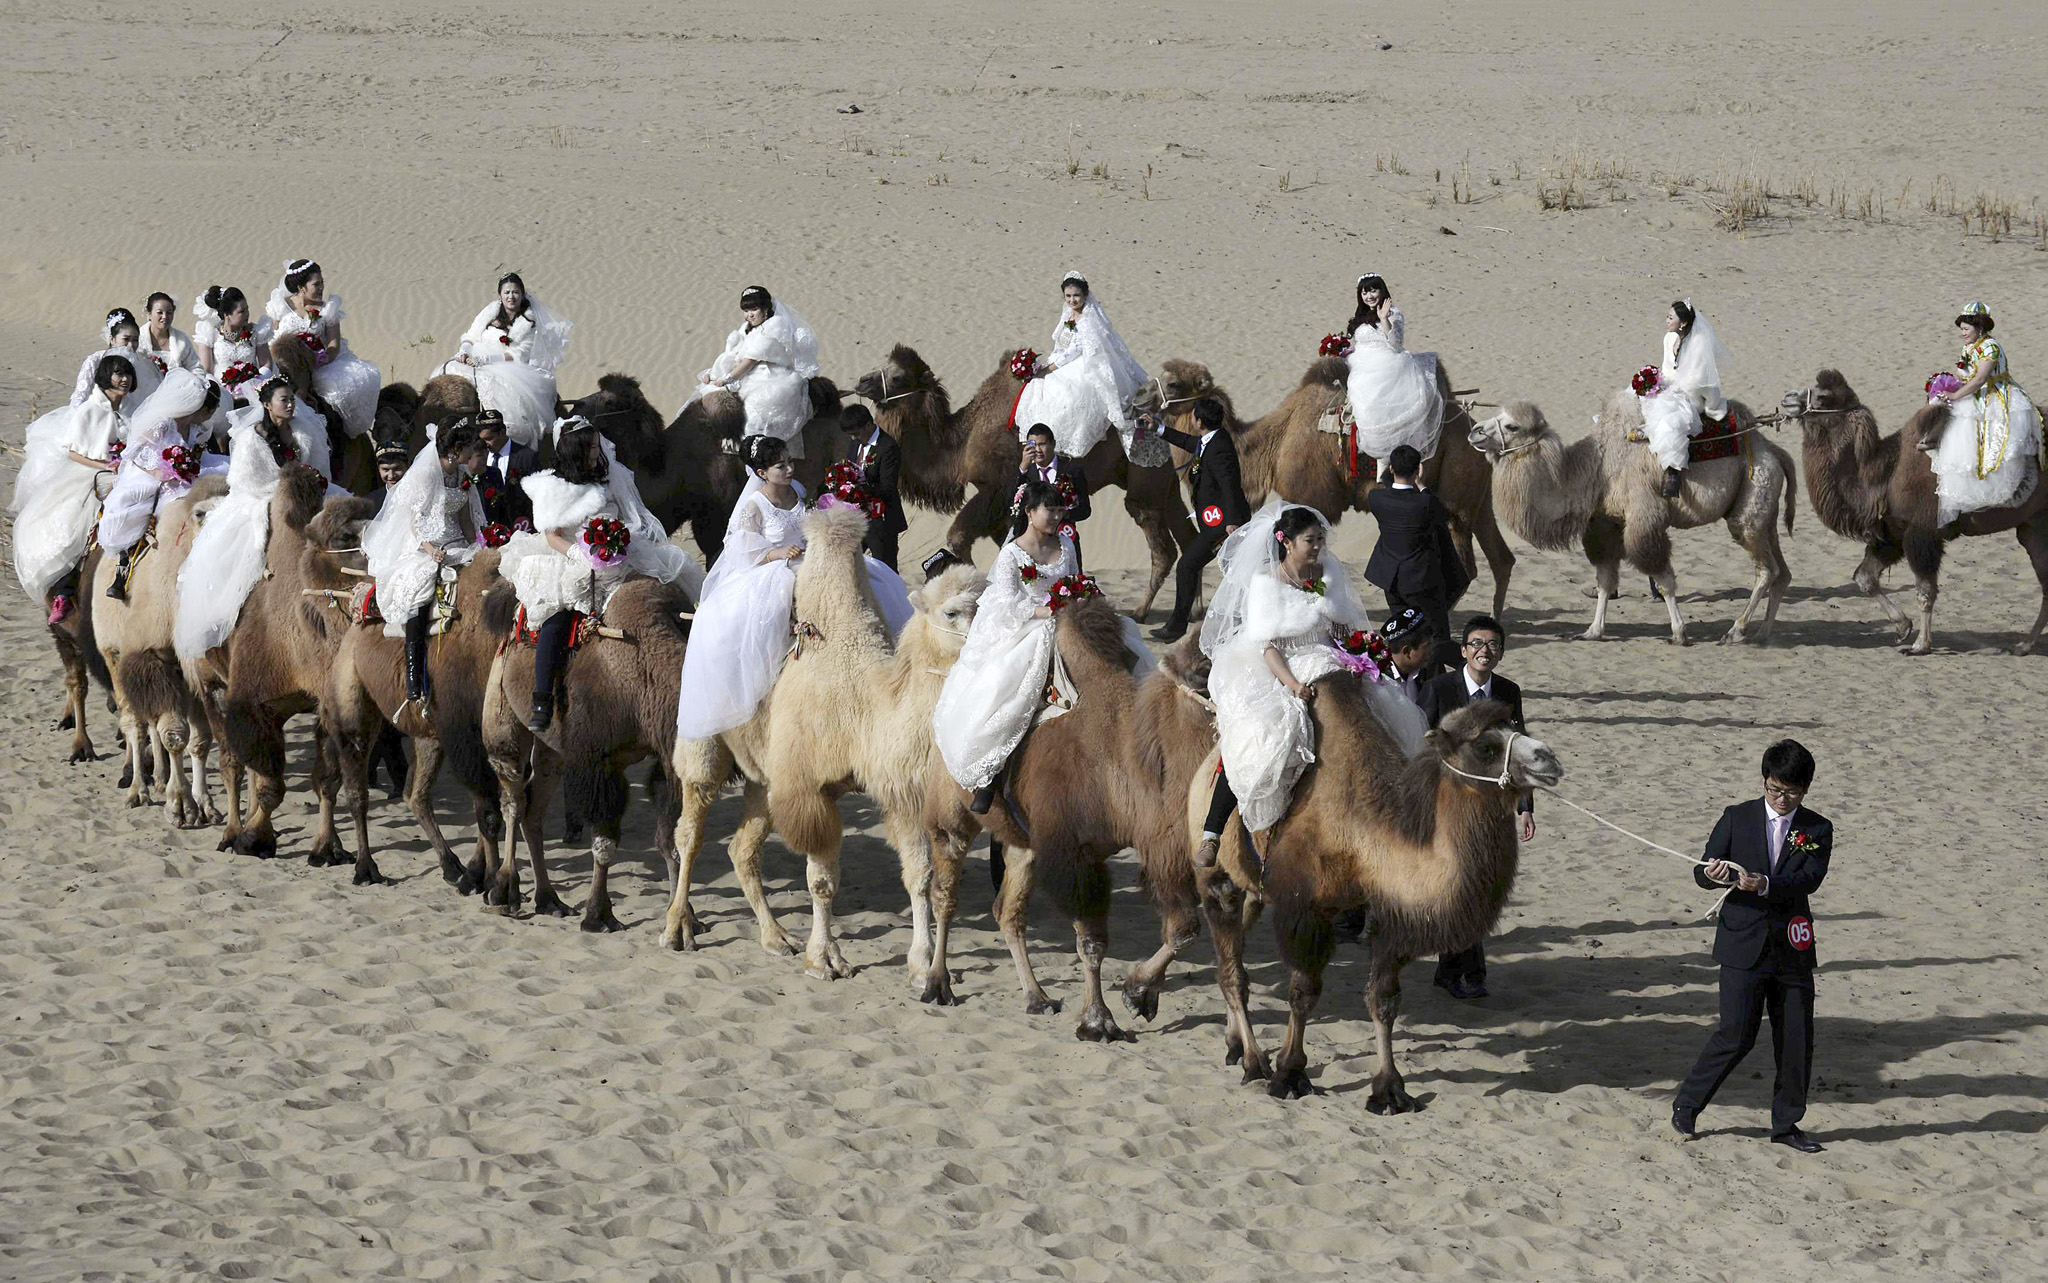 Newly-wed grooms lead camels carrying their brides during a mass wedding in a desert at a tourism area containing a populus euphratica reserve in Yuli county...Newly-wed grooms lead camels carrying their brides during a mass wedding in a desert at a tourism area containing a populus euphratica reserve in Yuli county, Xinjiang Uighur Autonomous Region, November 2, 2014. A total of 22 couples took part in the mass wedding on Sunday, local media reported. Picture taken November 2, 2014. REUTERS/China Daily (CHINA - Tags: SOCIETY ANIMALS TPX IMAGES OF THE DAY) CHINA OUT. NO COMMERCIAL OR EDITORIAL SALES IN CHINA